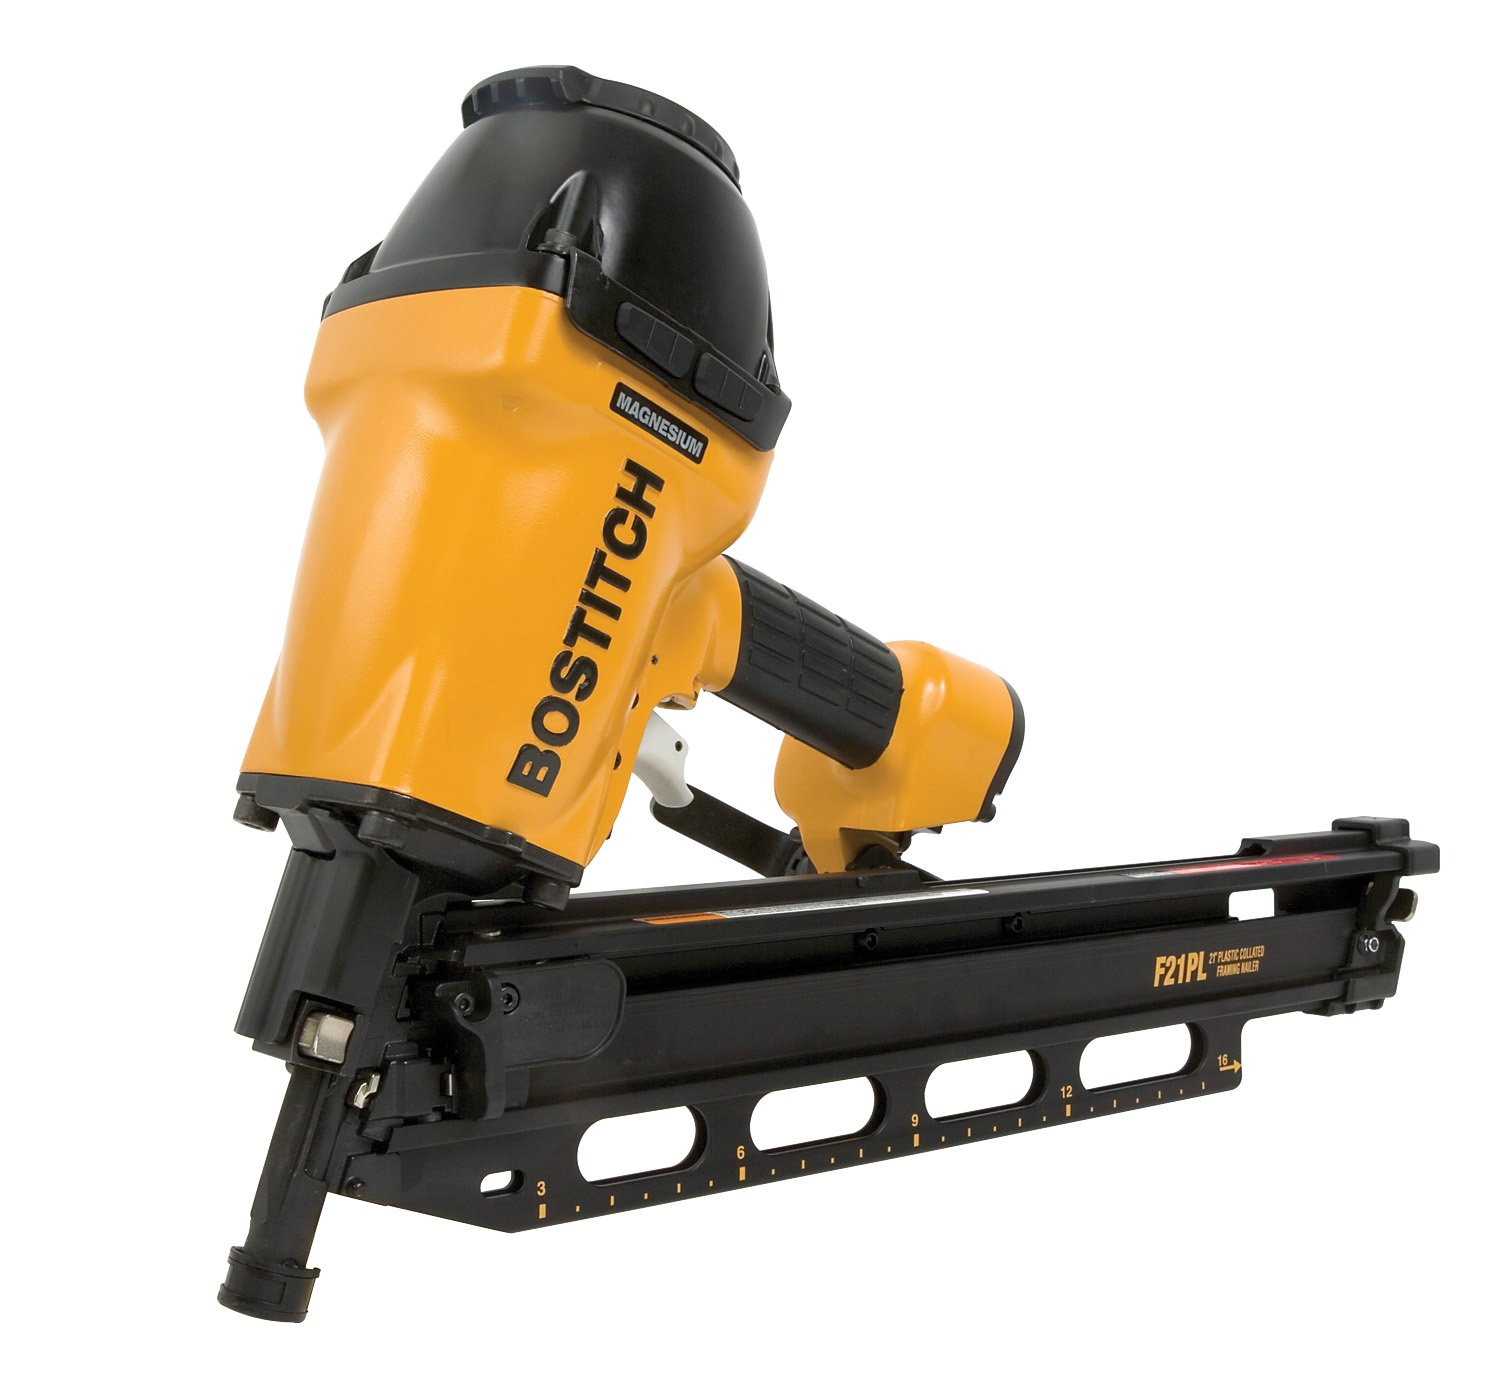 Bostitch F21 PL Nailer